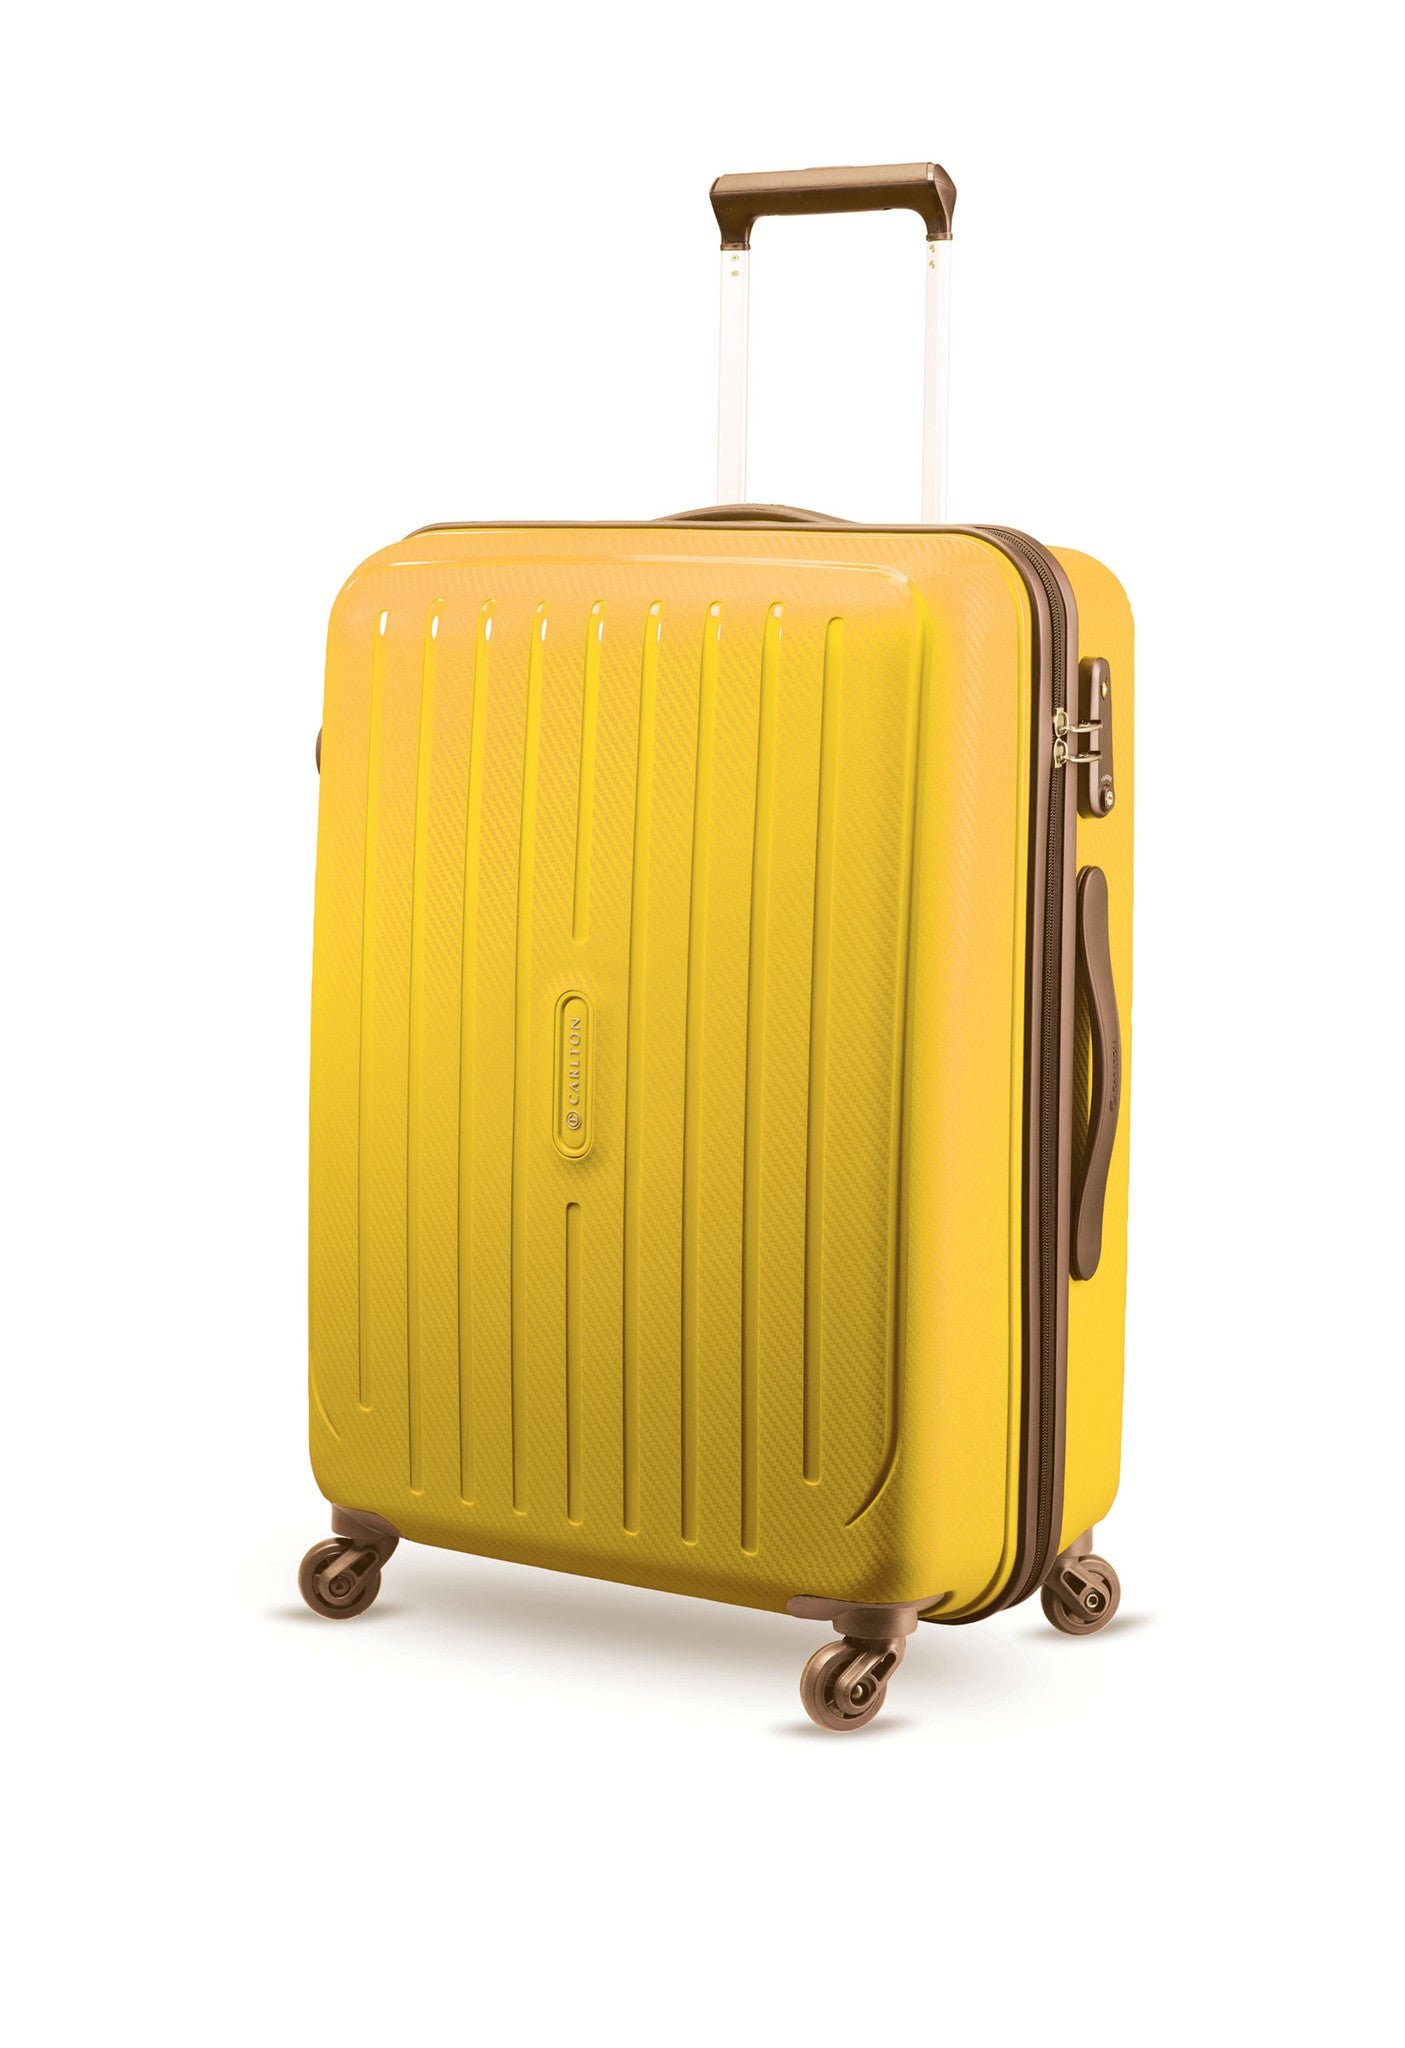 Carlton Phoenix 75cm Size Trolley Case Yellow